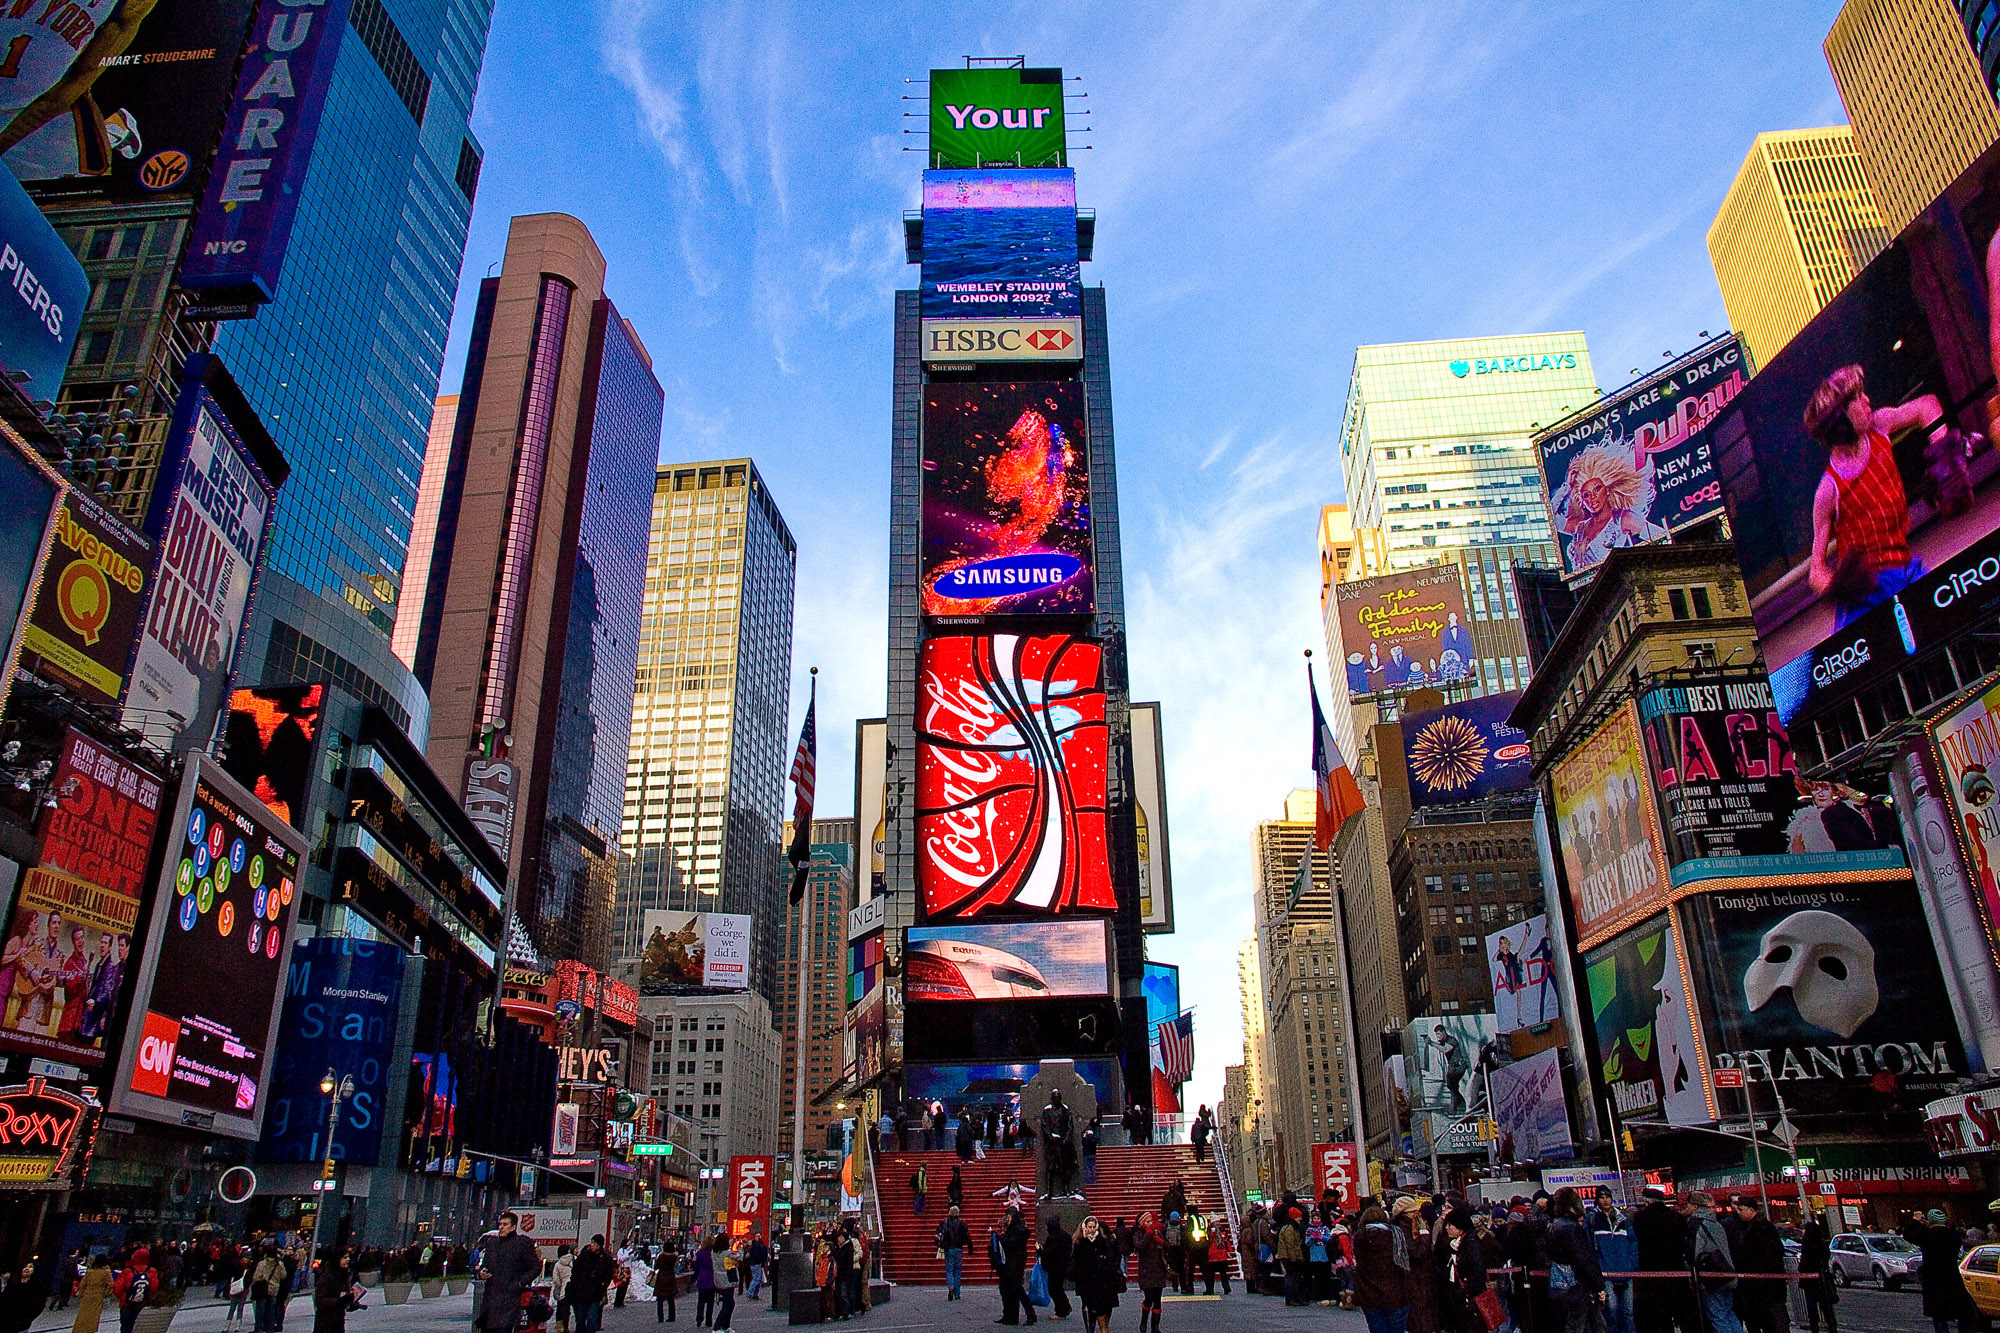 Times square wallpaper wallpapertag - Times square background ...